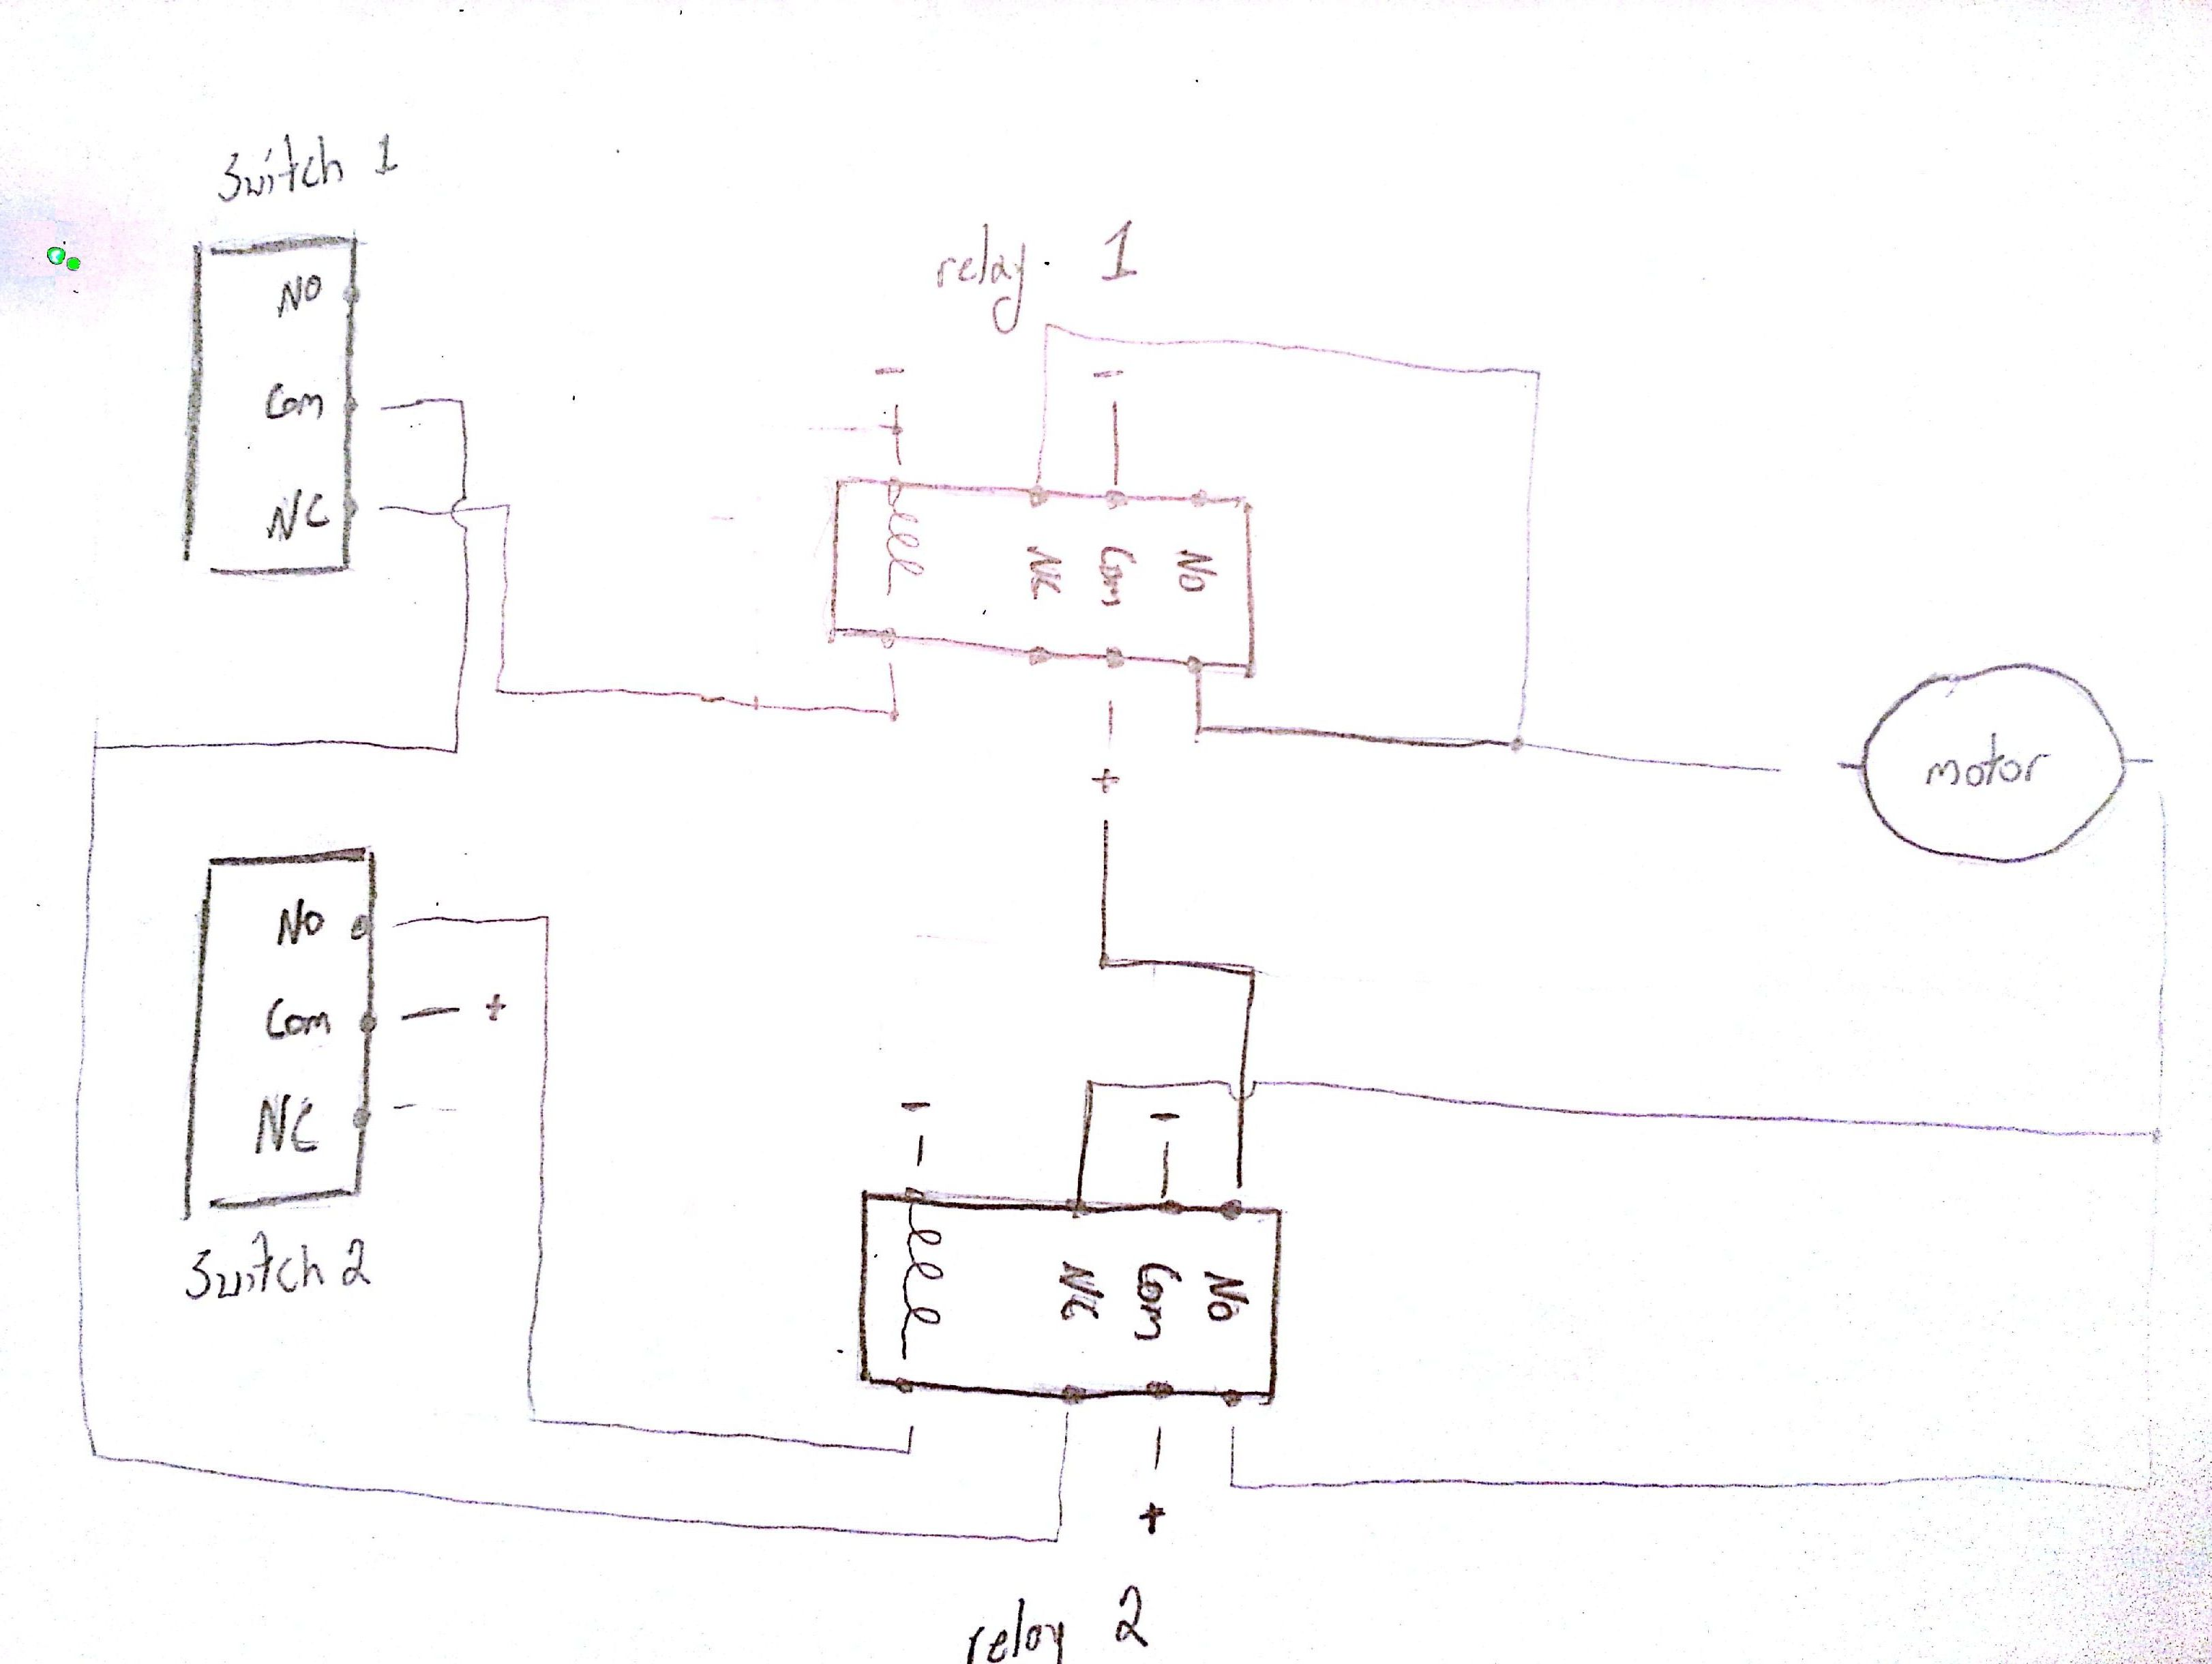 Limit Switches To Control Motor Direction